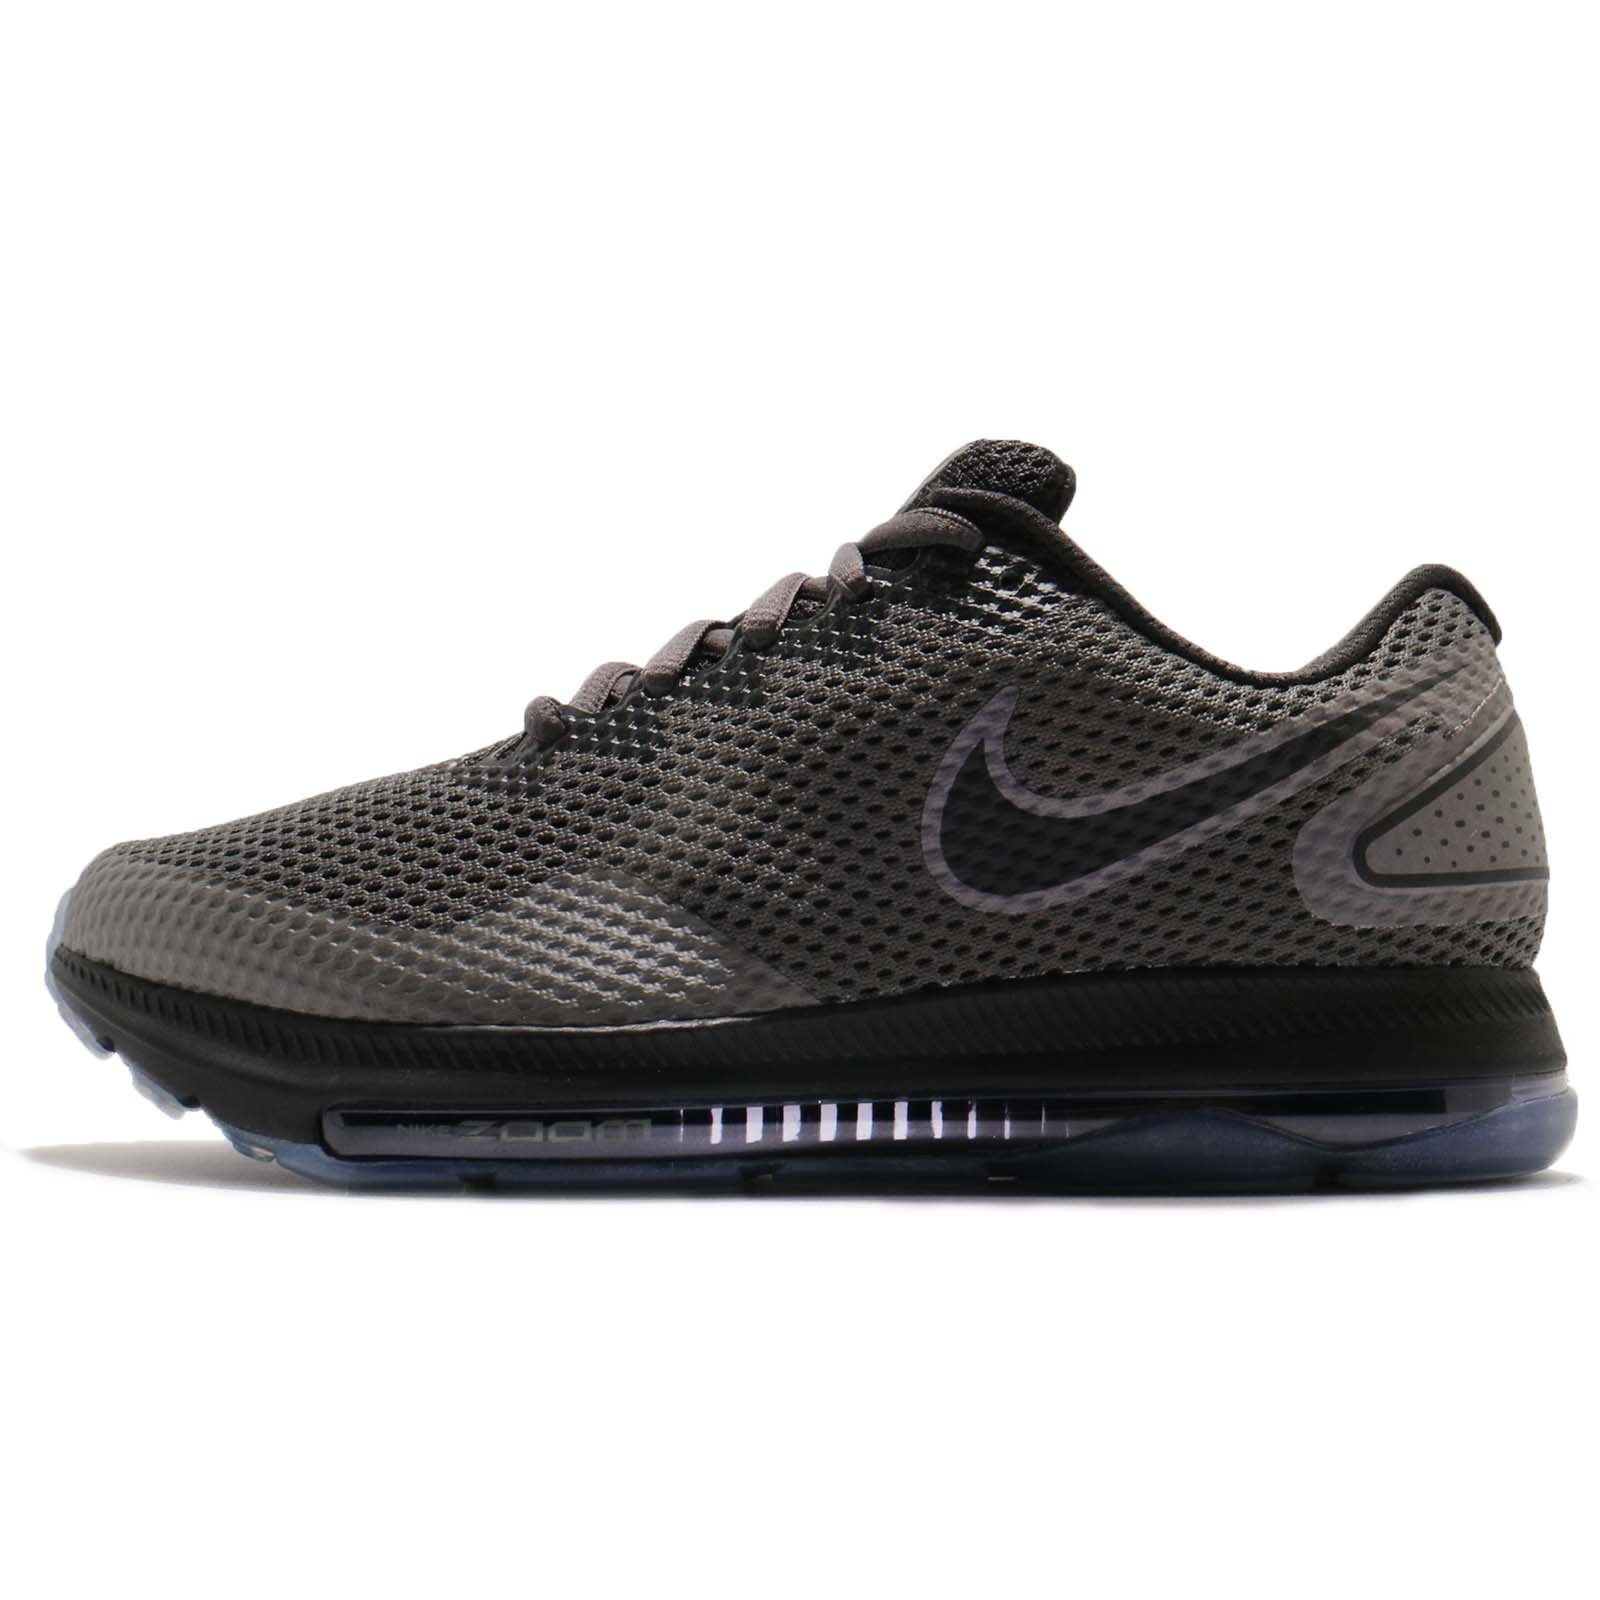 22d2170ae9f Nike Wmns Zoom All Out Low 2 Grey Black Air Max Women Running Shoes AJ0036 -002